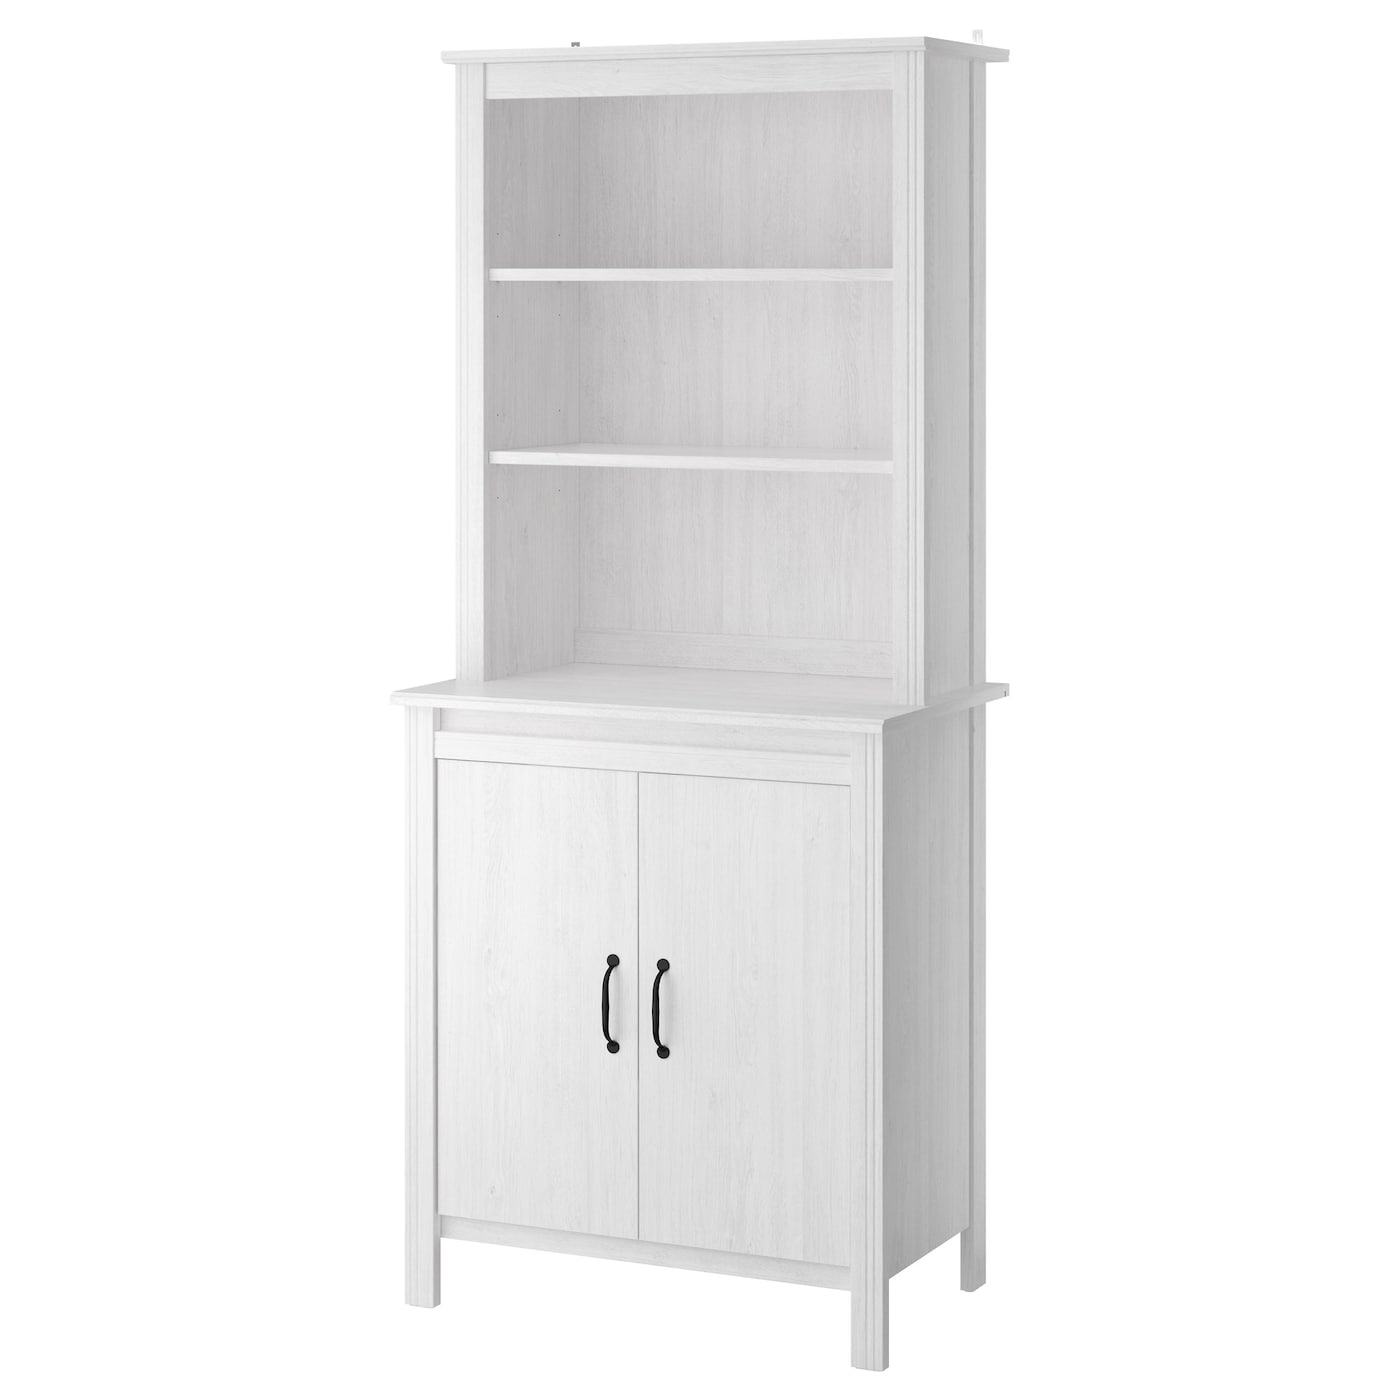 brusali high cabinet with door white 80 x 190 cm ikea. Black Bedroom Furniture Sets. Home Design Ideas